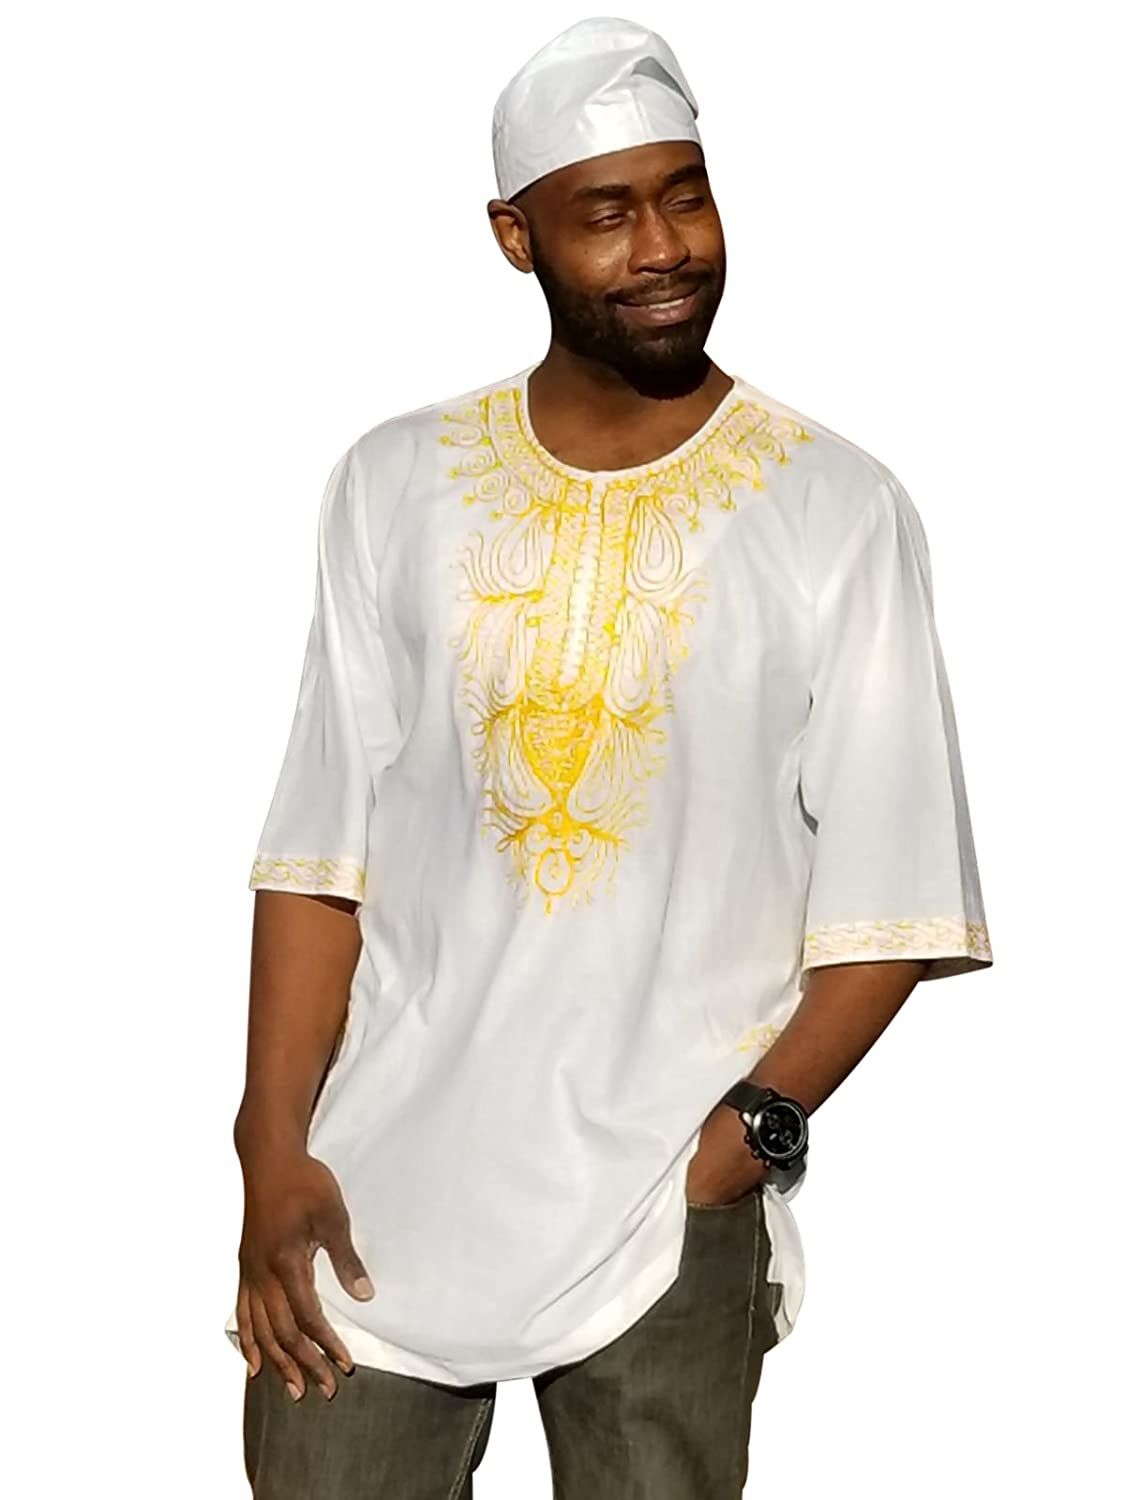 Off-White African Dashiki Shirt with Golden Orange Embroidery DP3790M